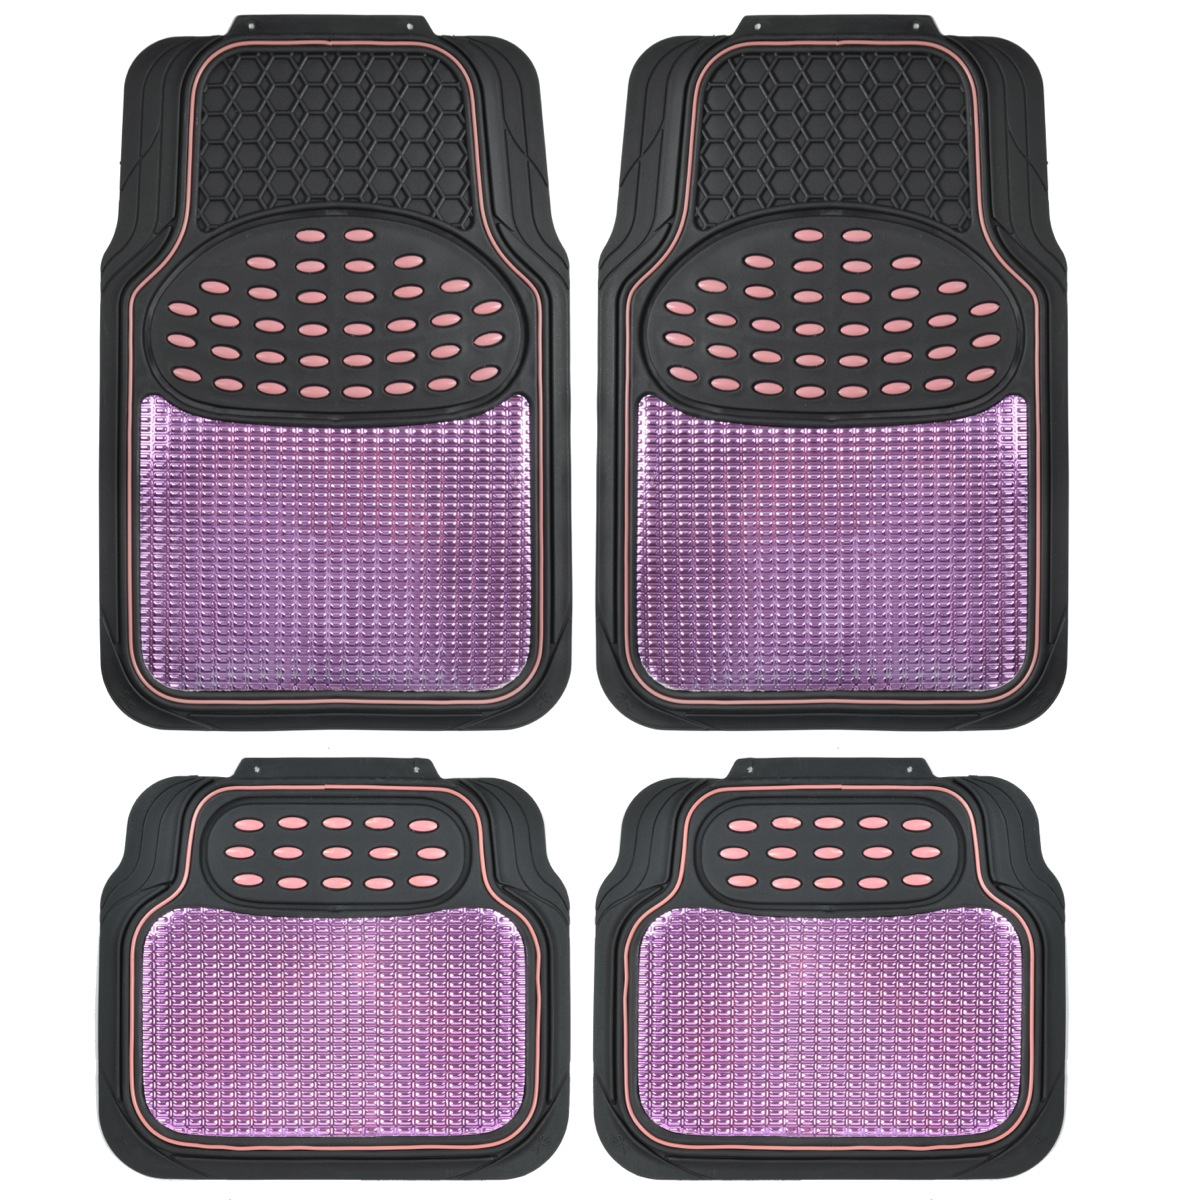 Pink And Black Metallic Design Rubber Floor Mats Car Suv